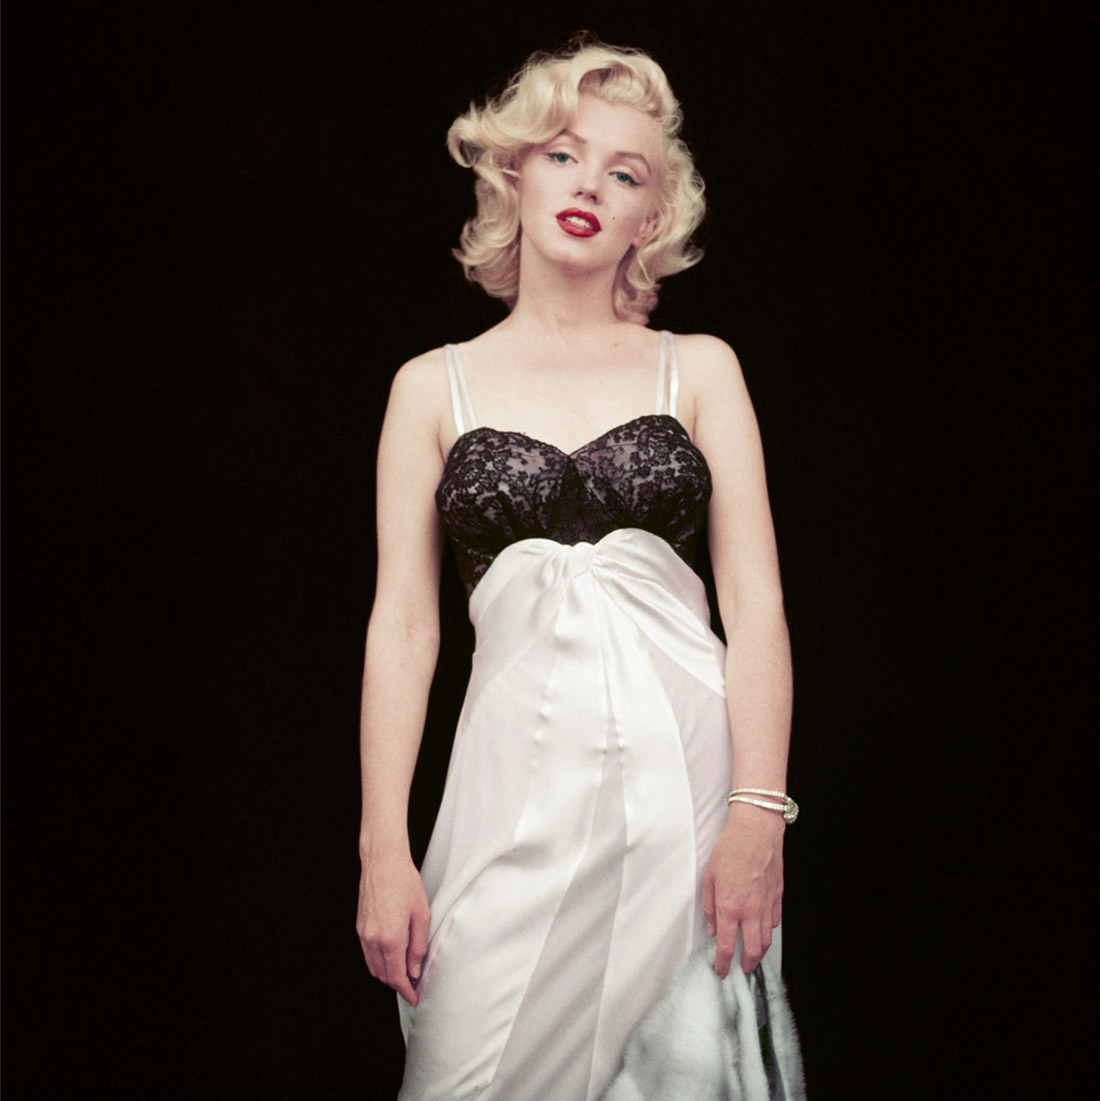 Connu Classic and never-before-seen photos of Marilyn Monroe - CNN.com VC21